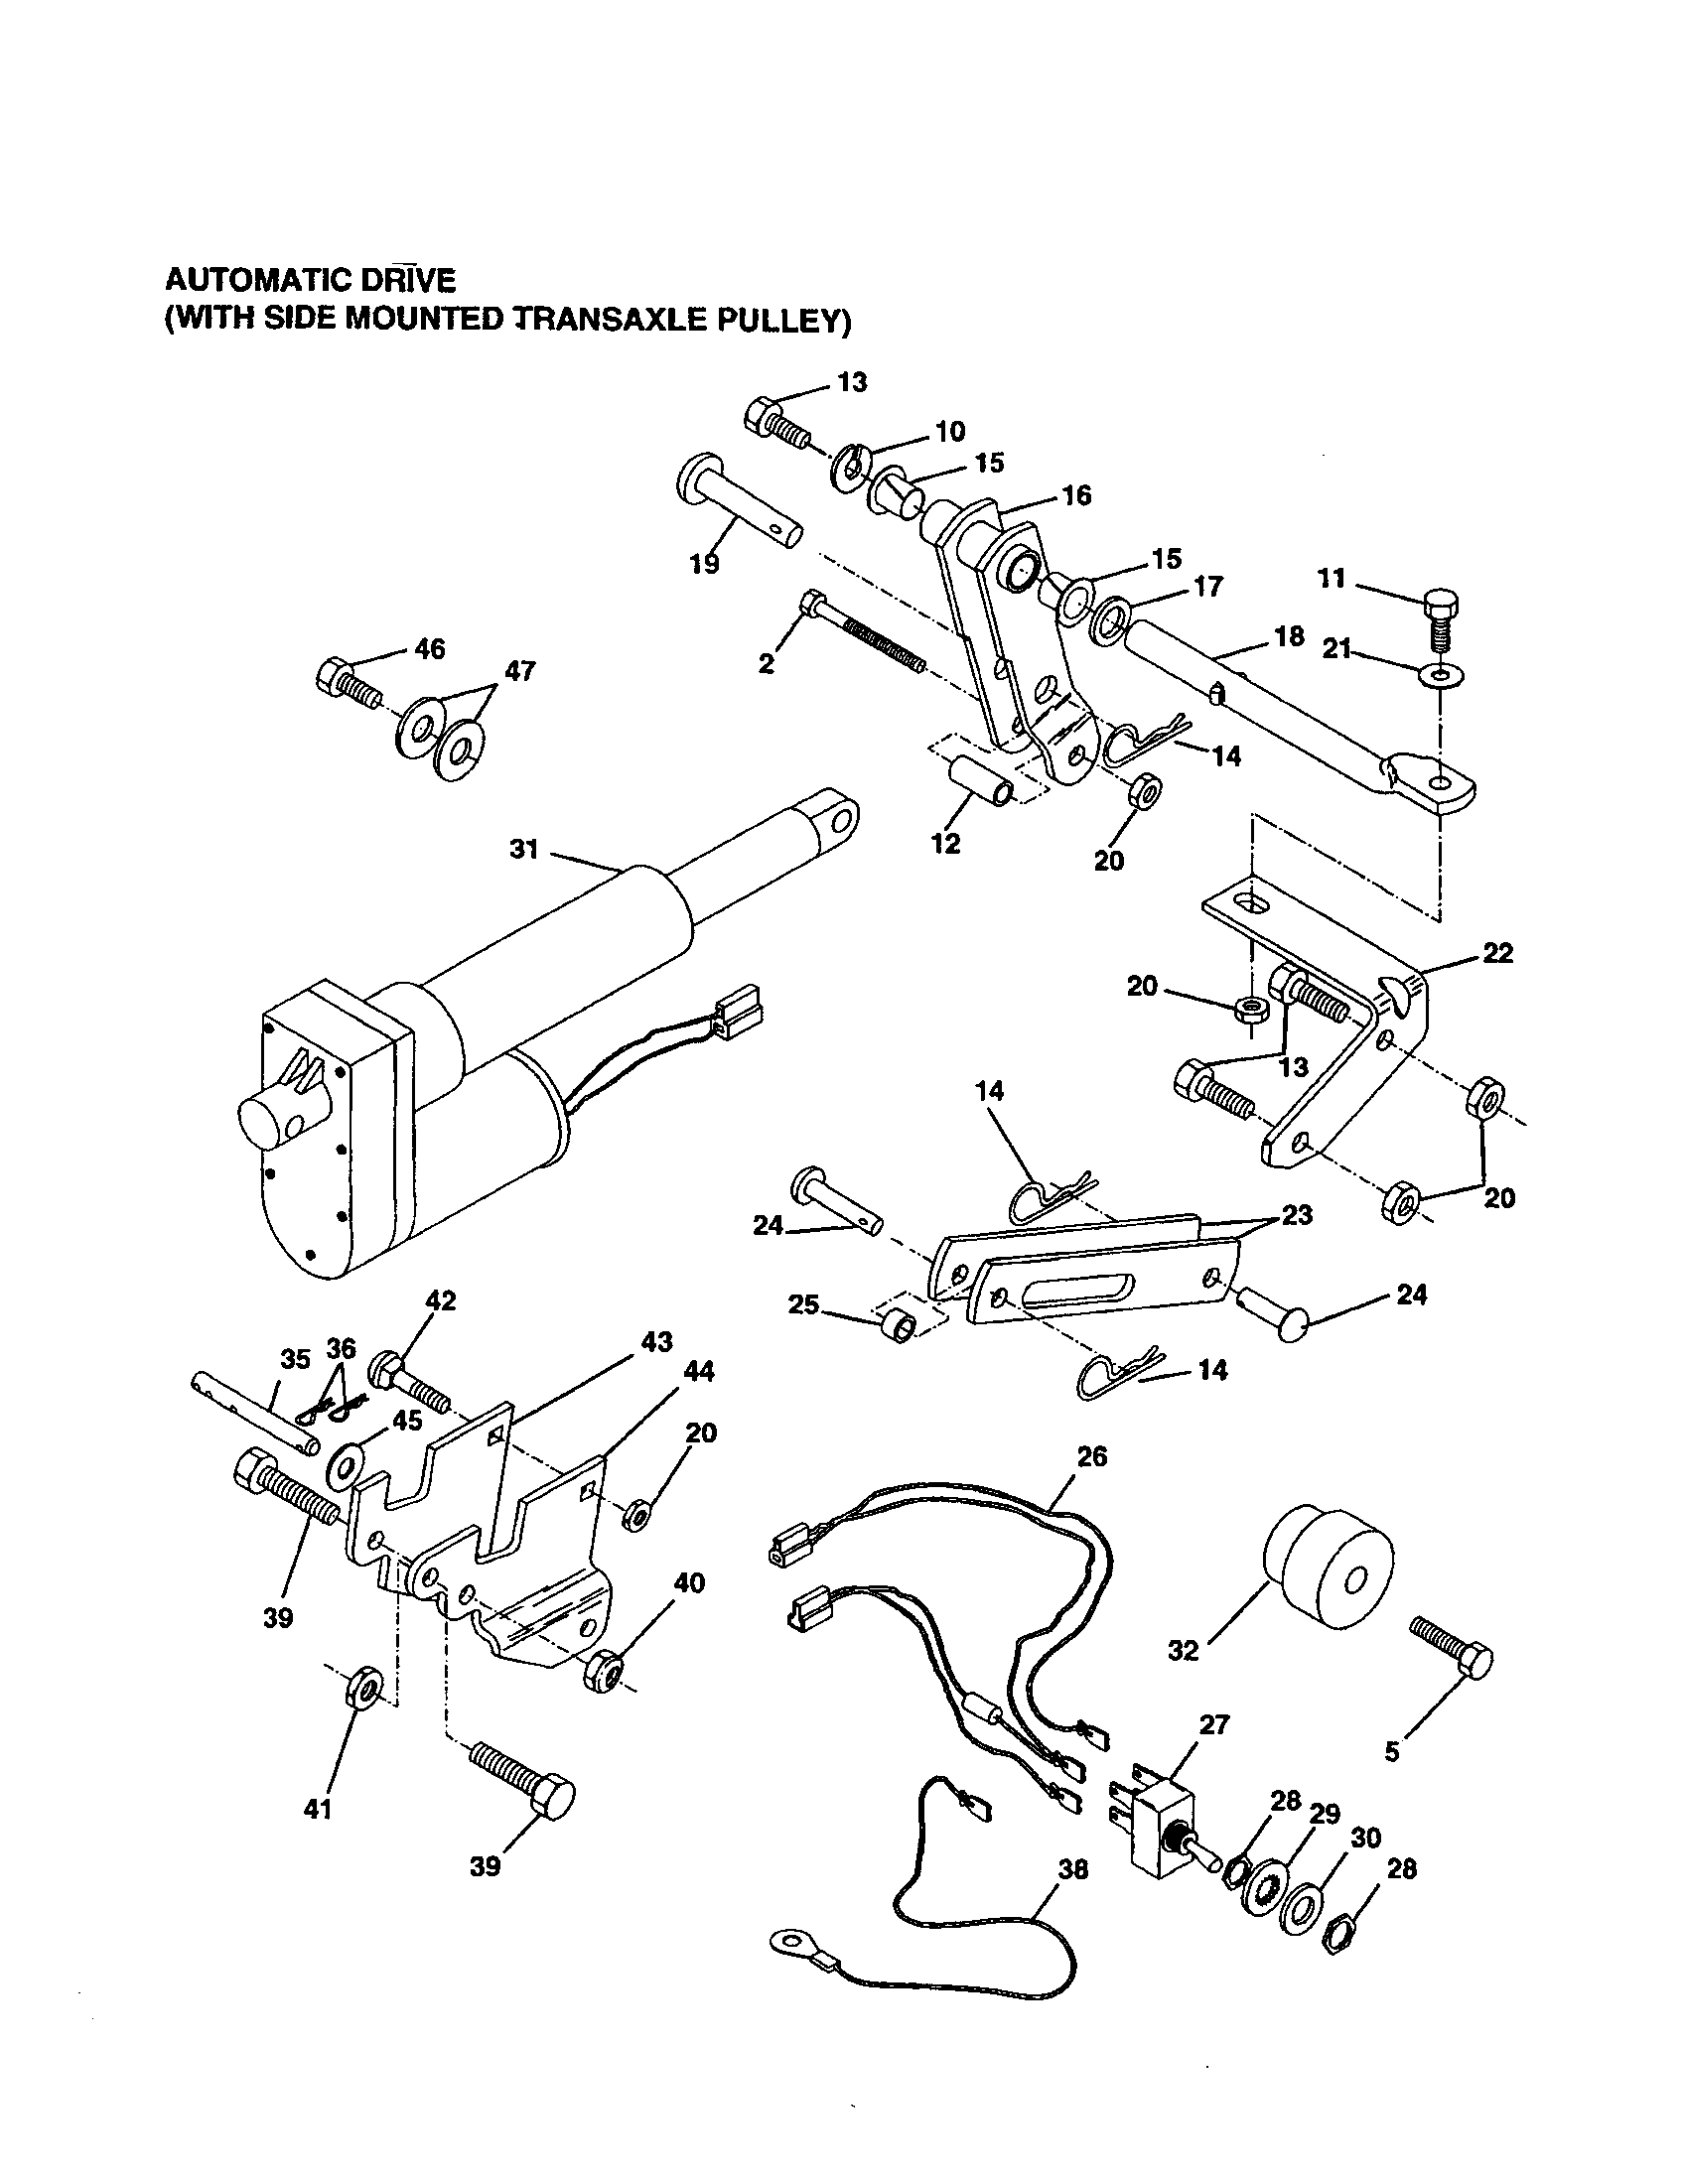 Craftsman model 917242450 tractor attachments genuine parts